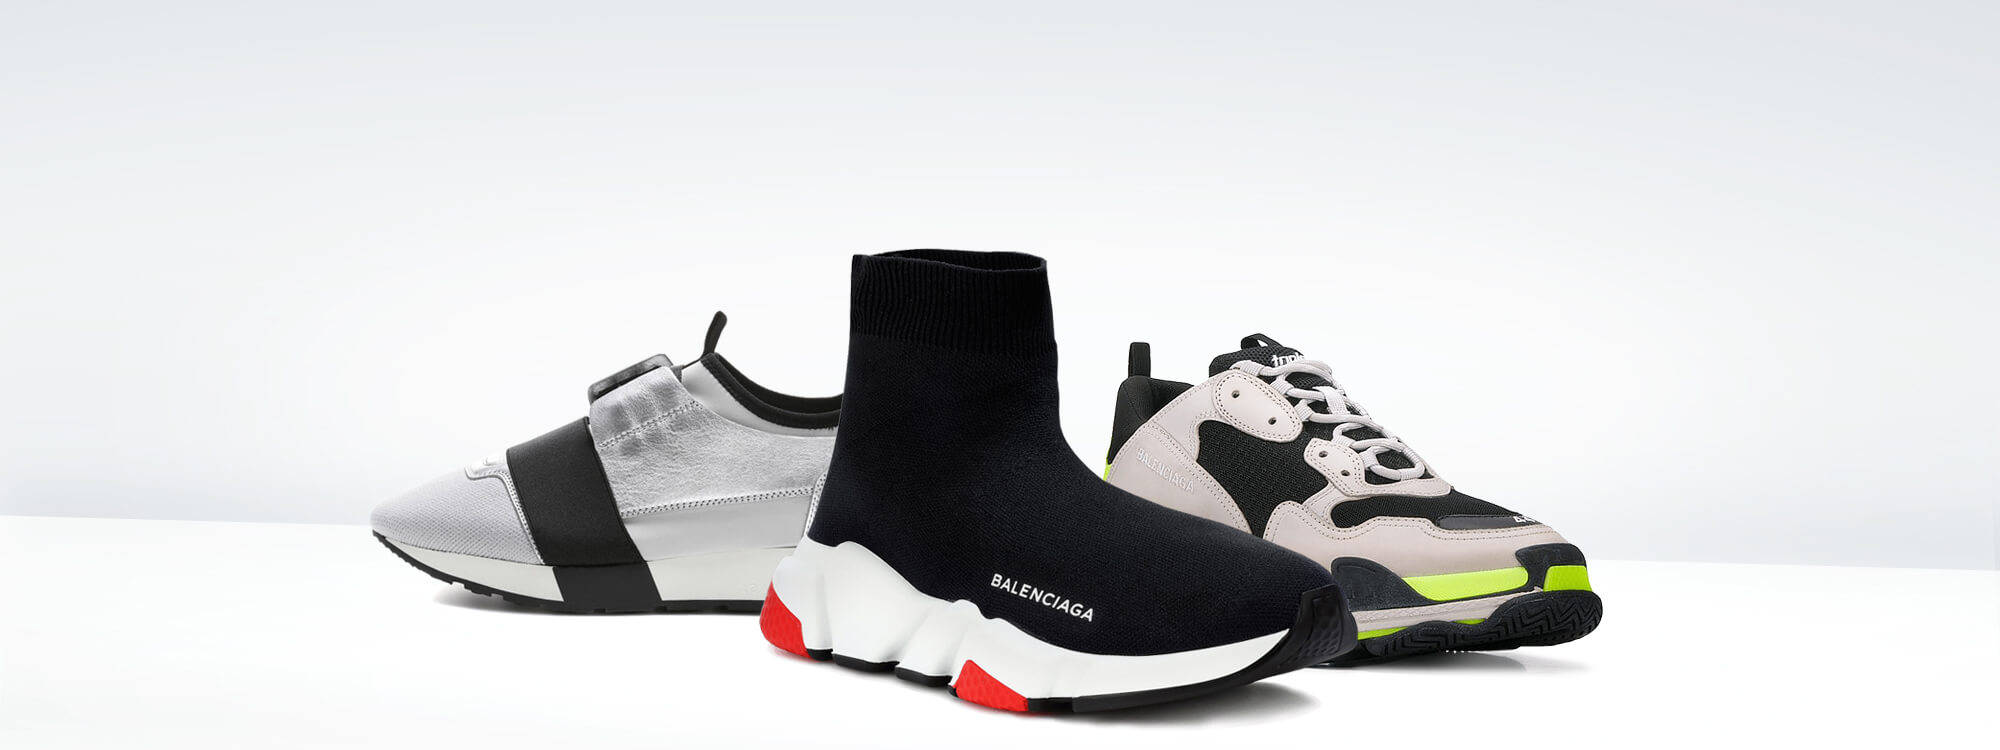 Buy new Balenciaga Sneakers unauthorized